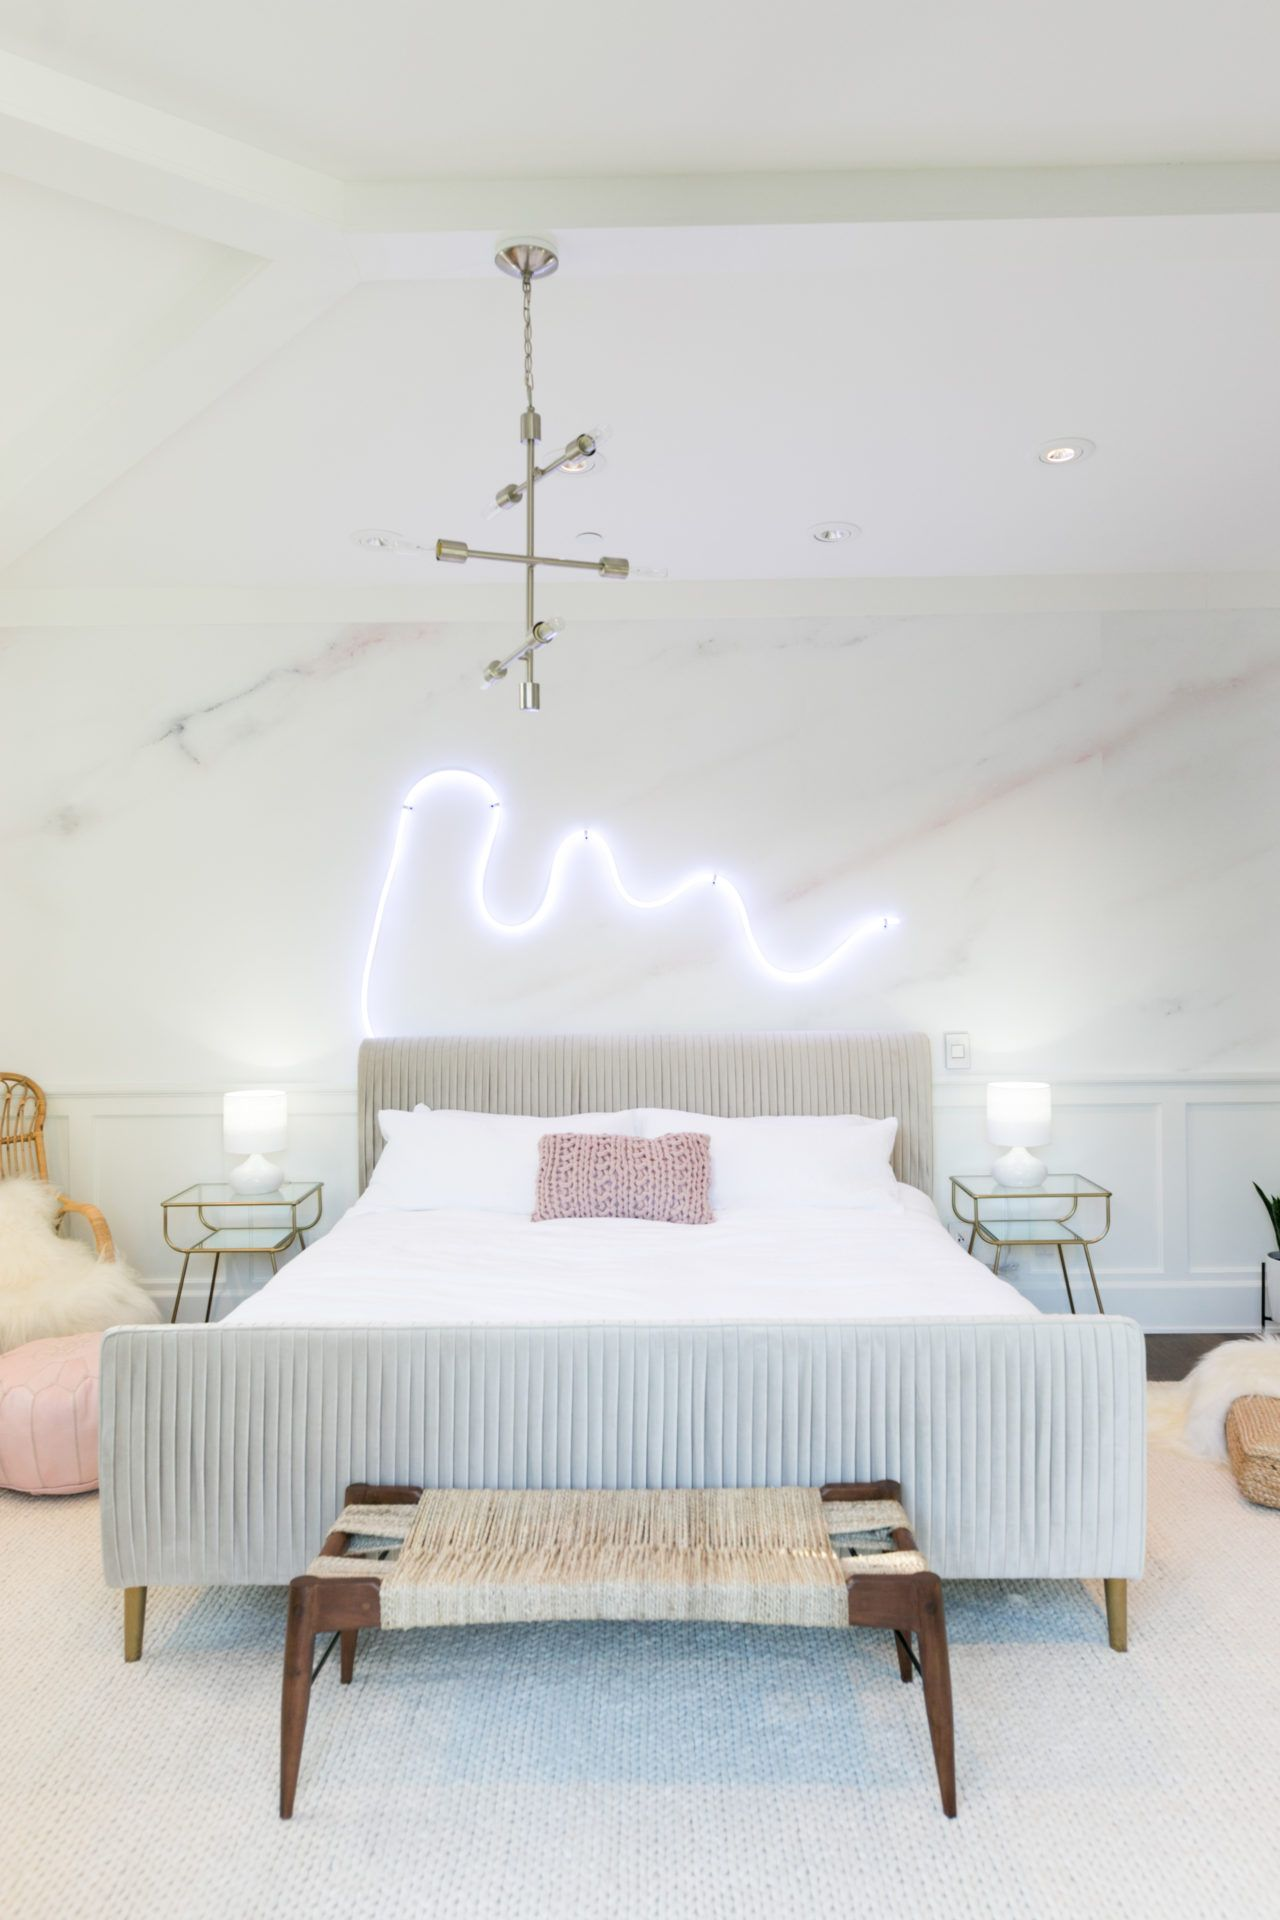 palm springs pastel bedroom makeover for alisha marie mr kate rh pinterest com